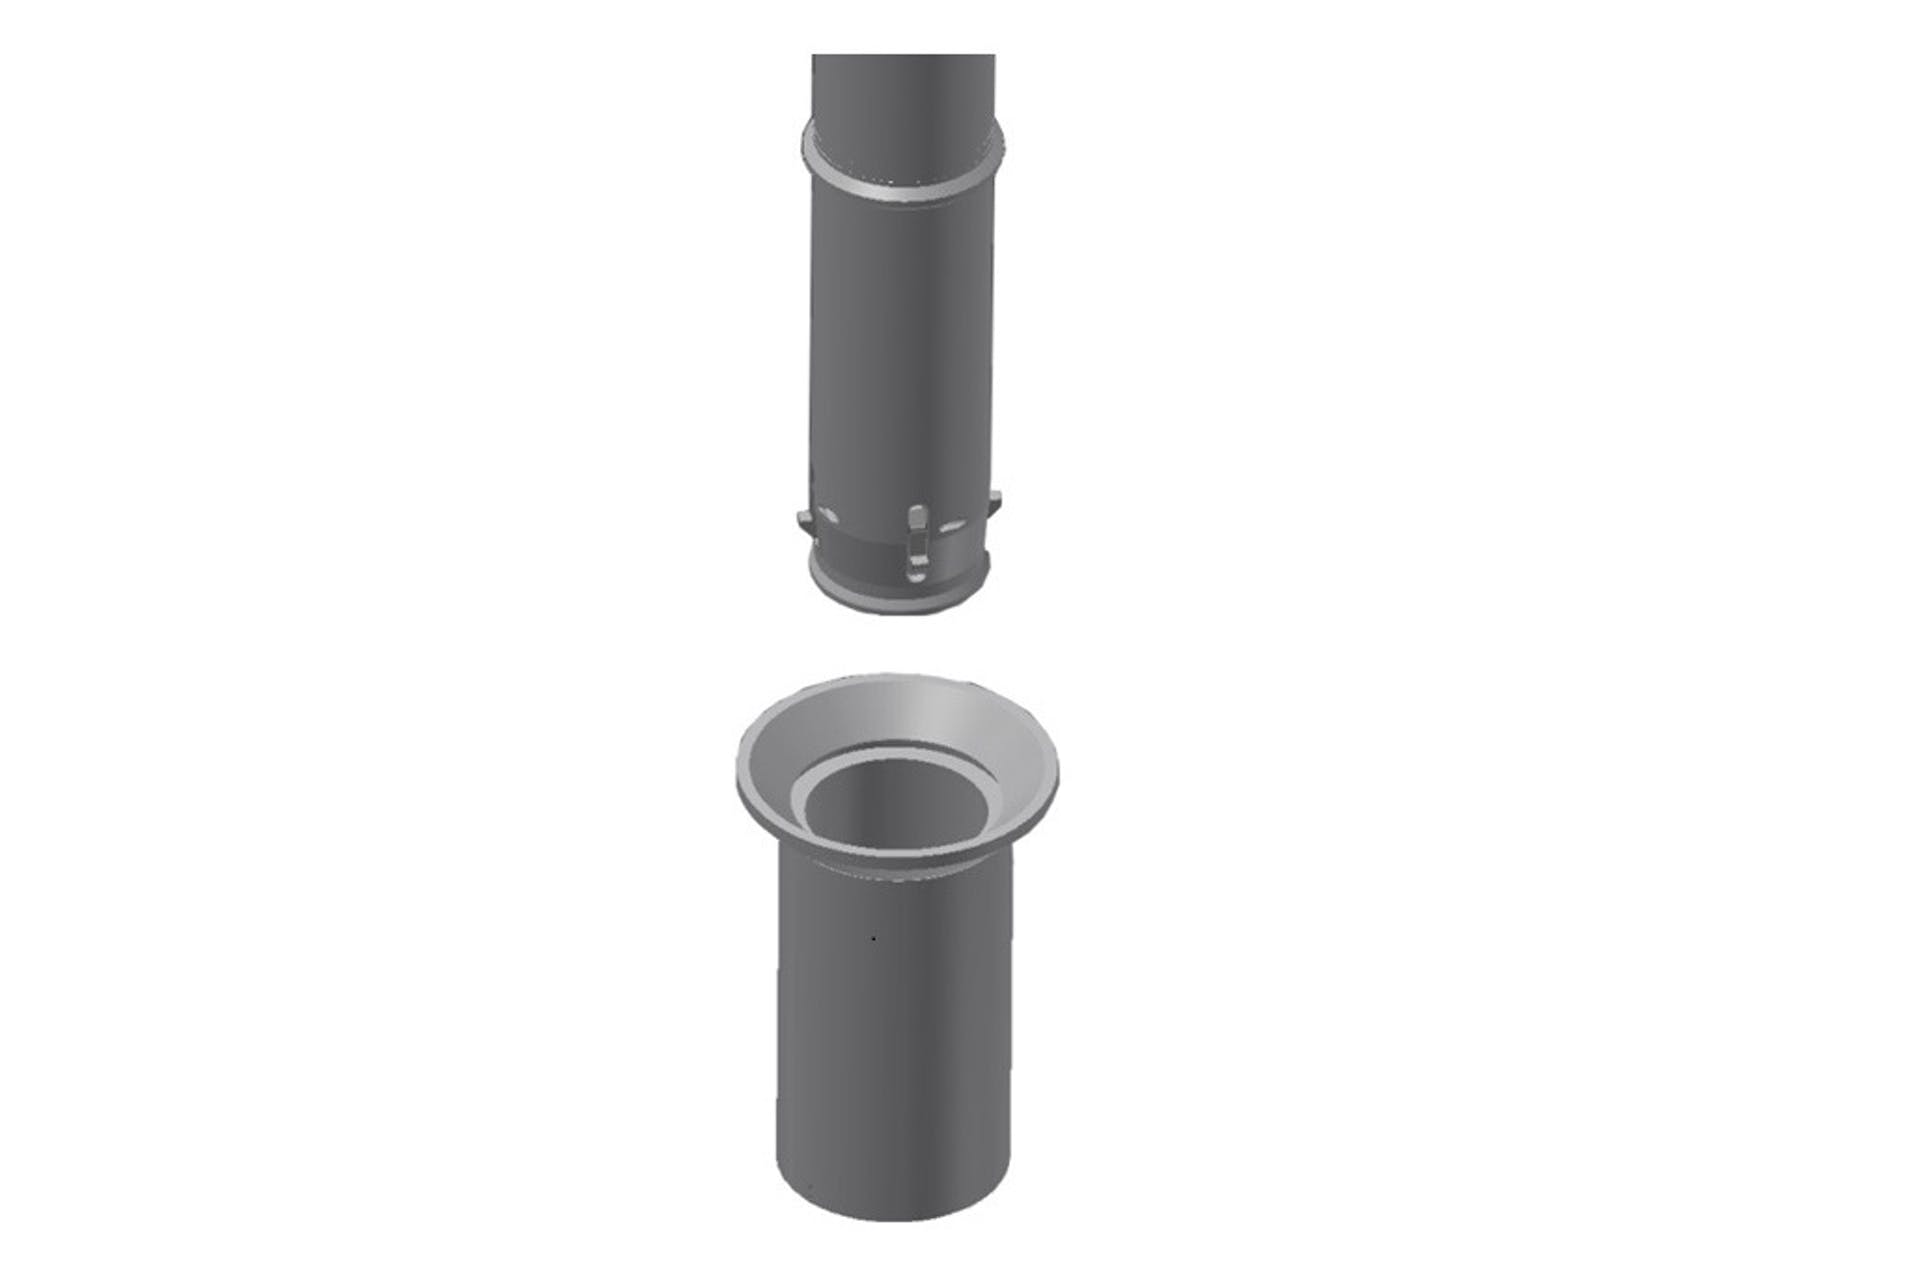 Receptacle for Top Releasable Guidepost – RTR